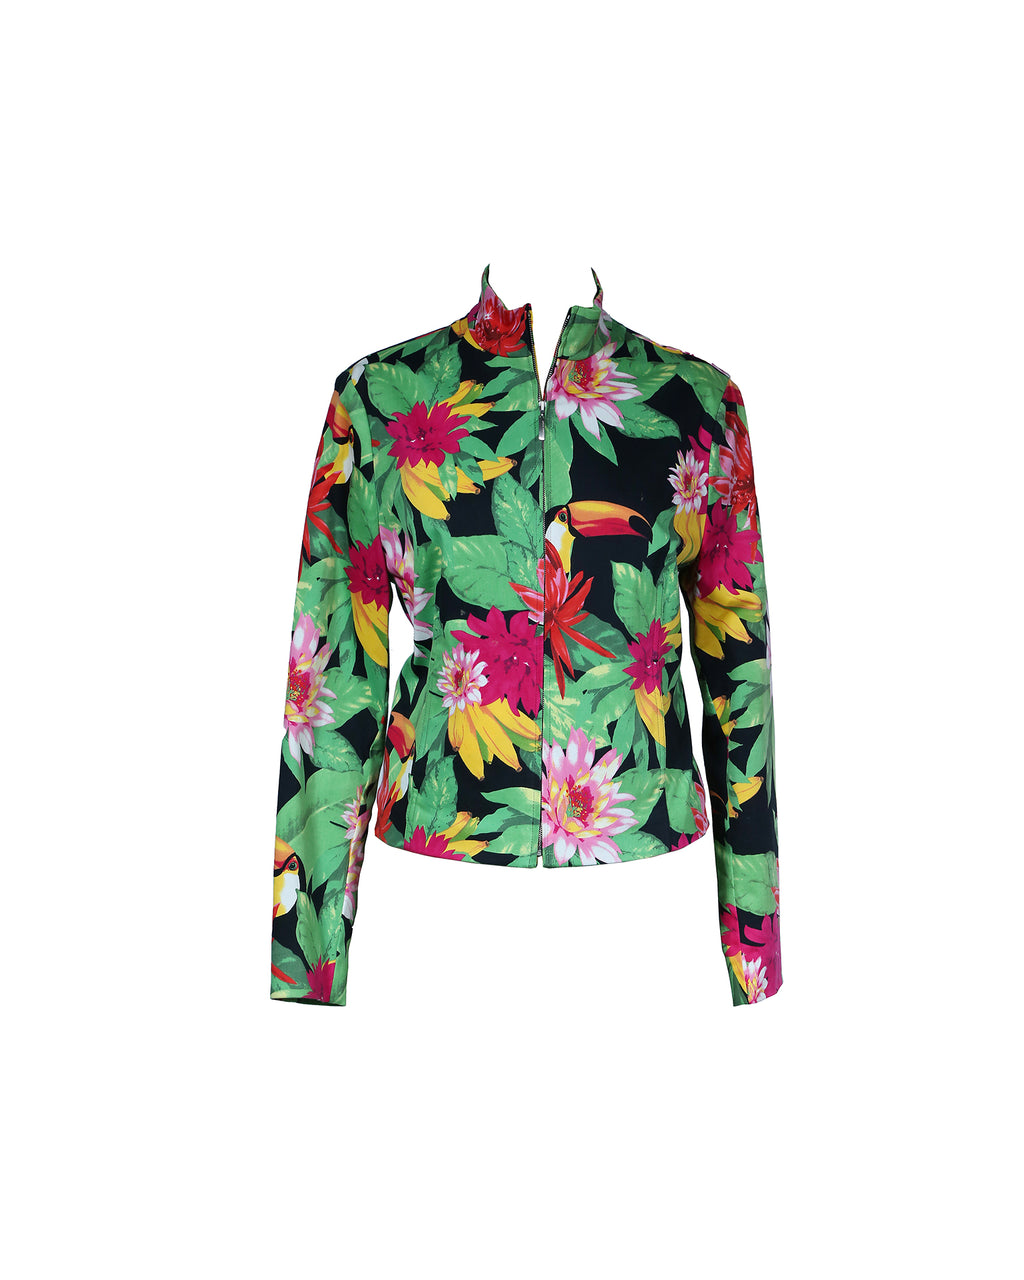 Escada Sport Tropical Print Jacket Size 40 (EU)